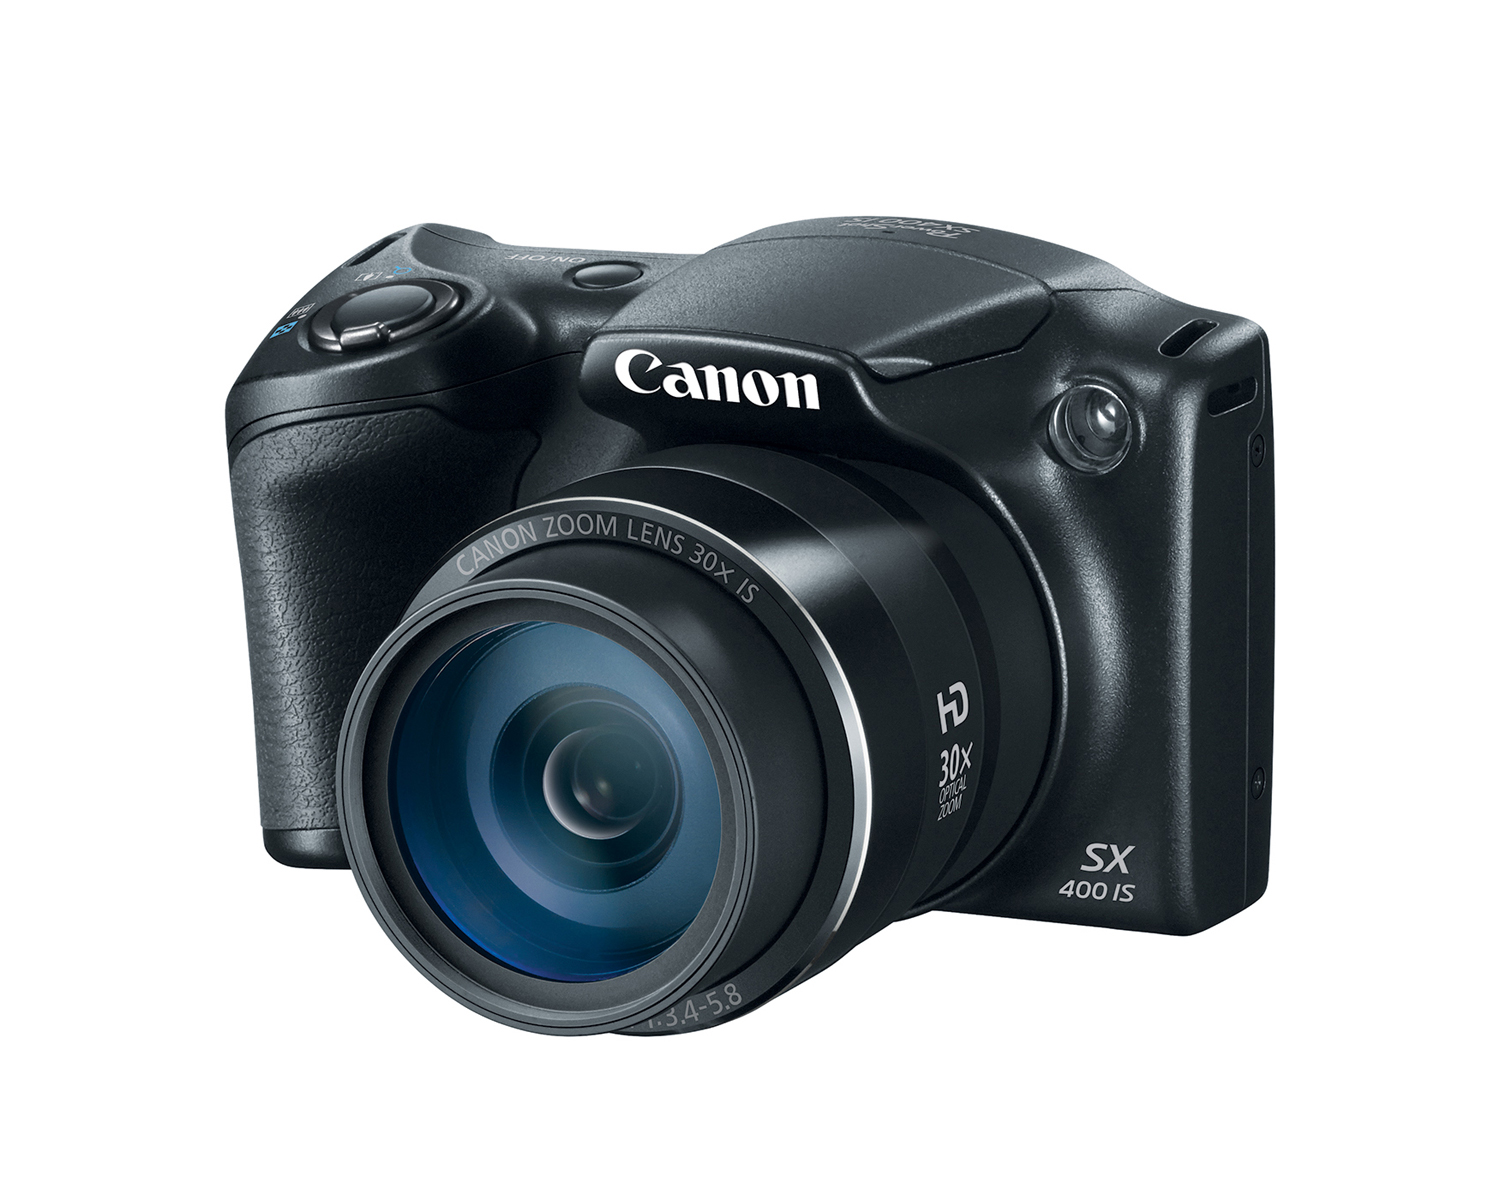 Canon PowerShot SX400 IS Digital Camera